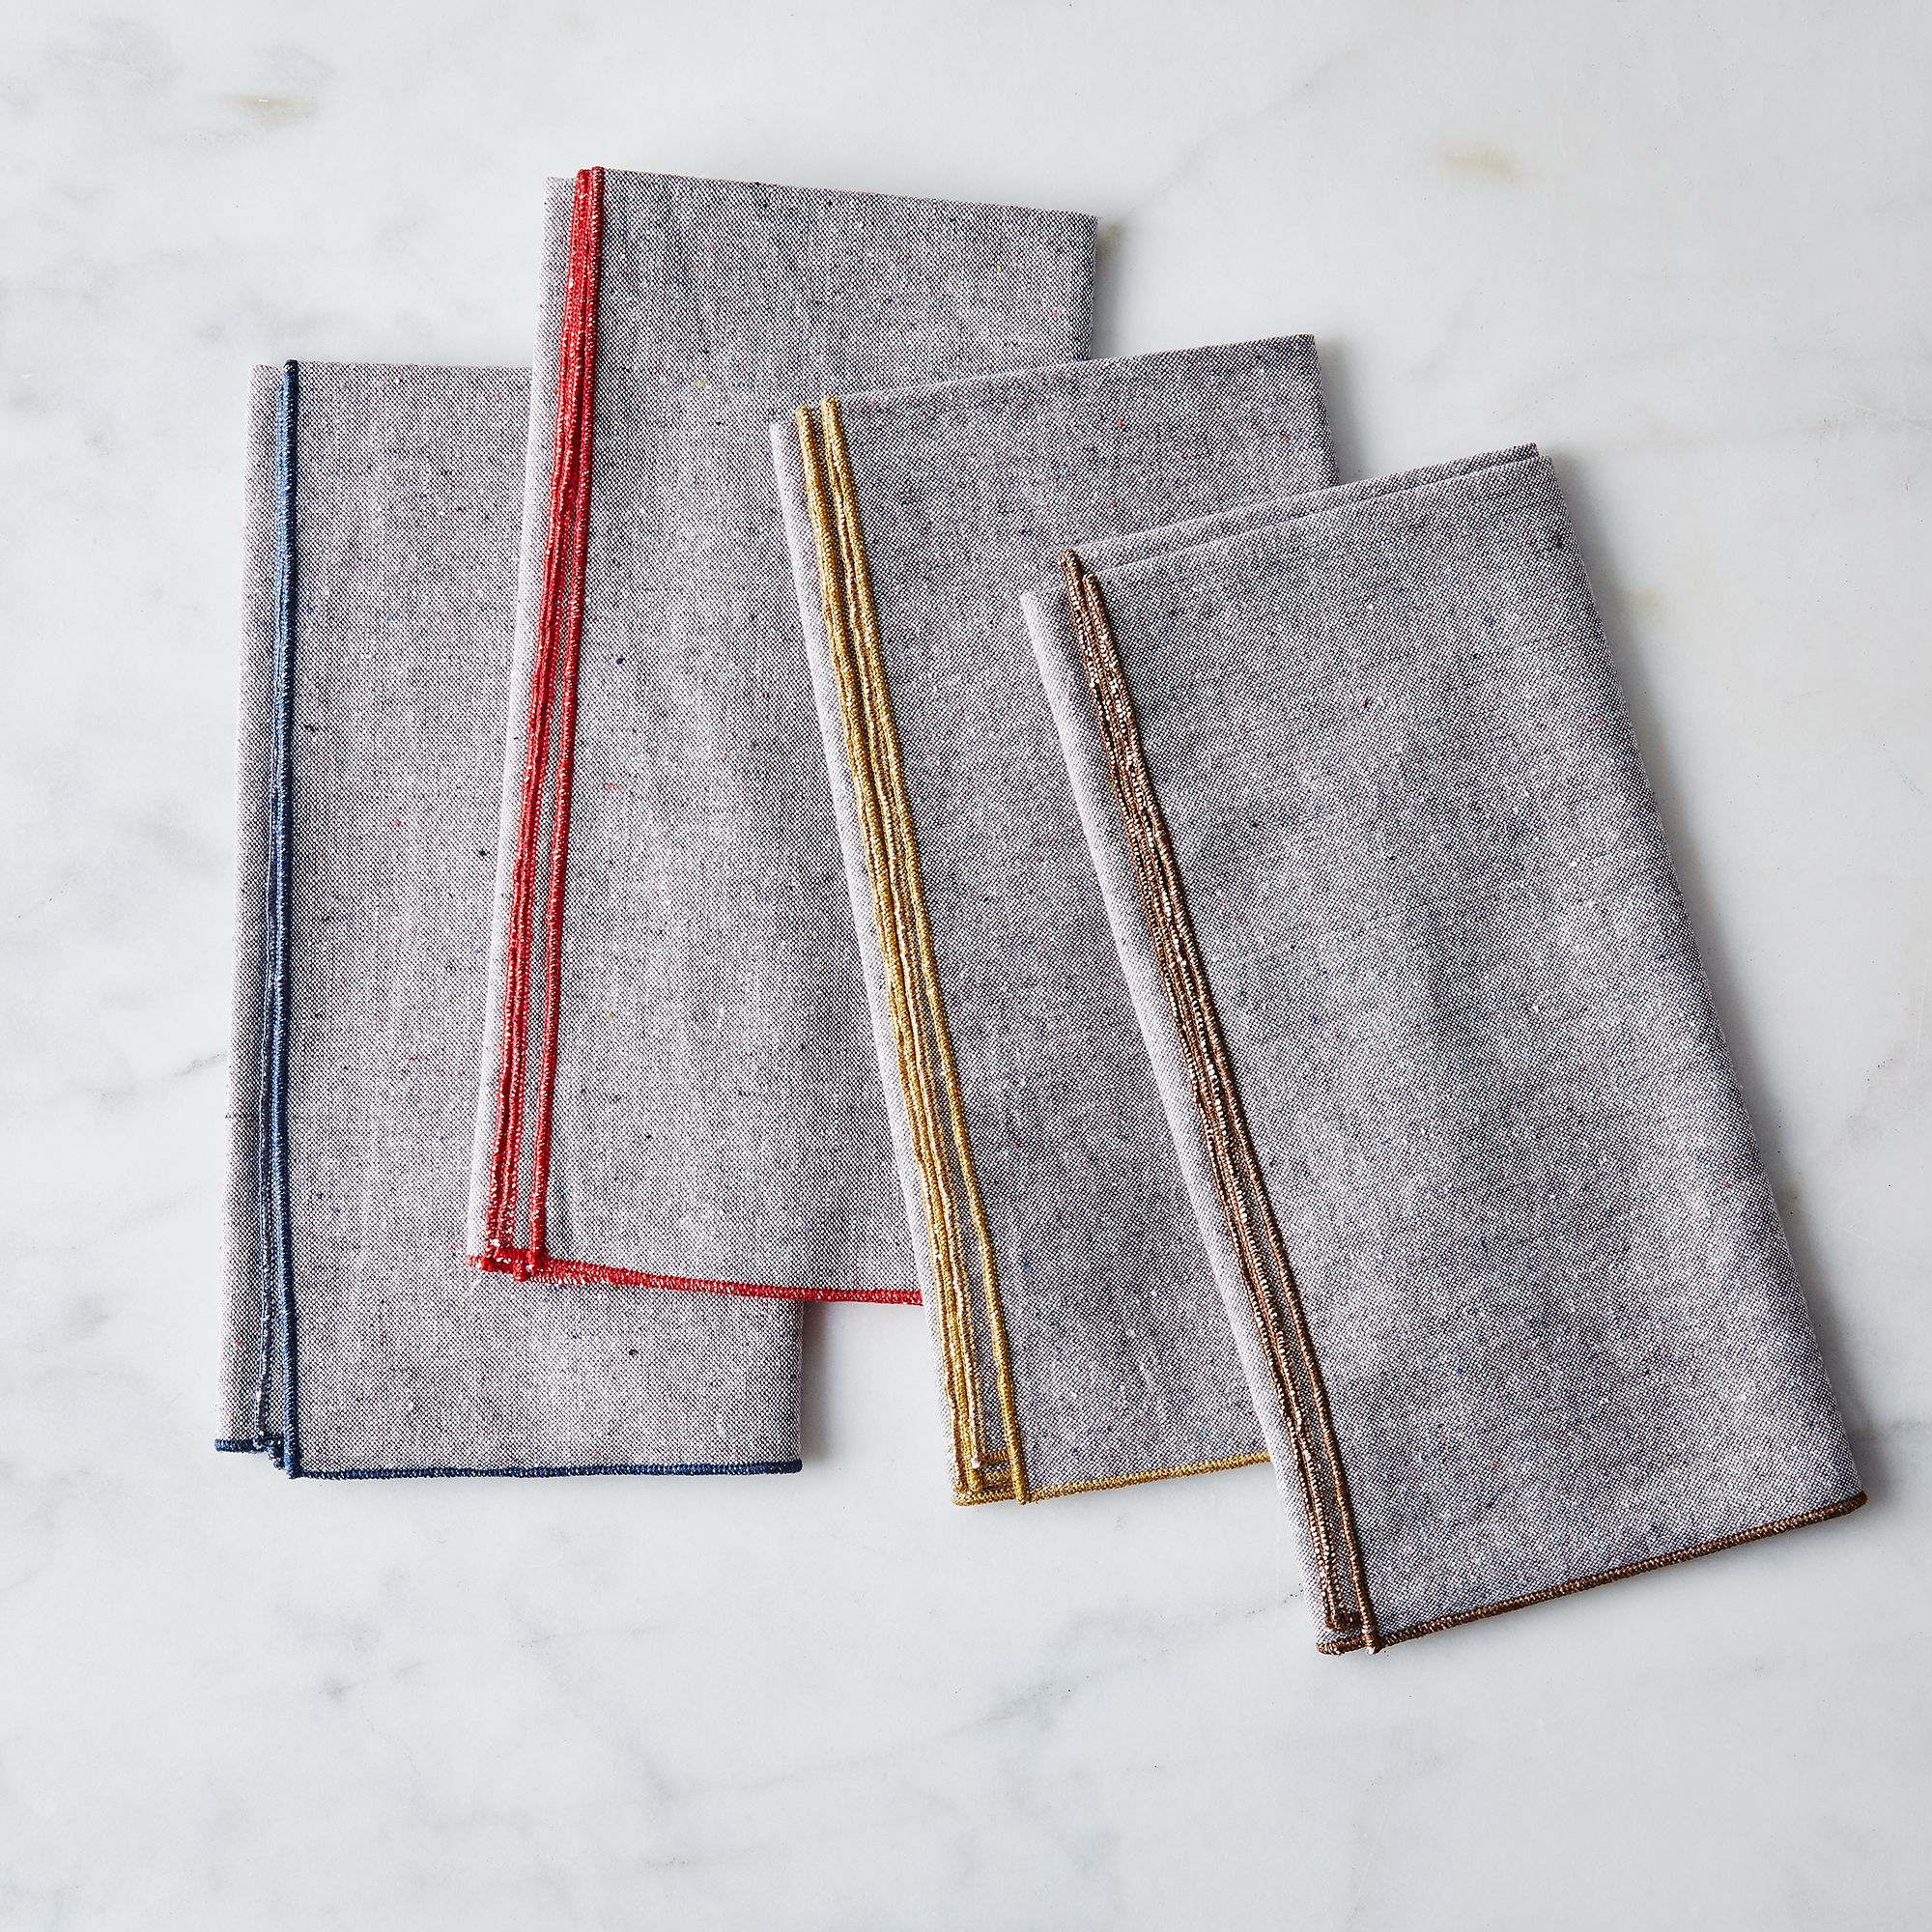 692058c9 e227 4360 a976 b709ec8ad12c  2015 0930 sage kai heathered napkins set of 4 silo bobbi lin 12142